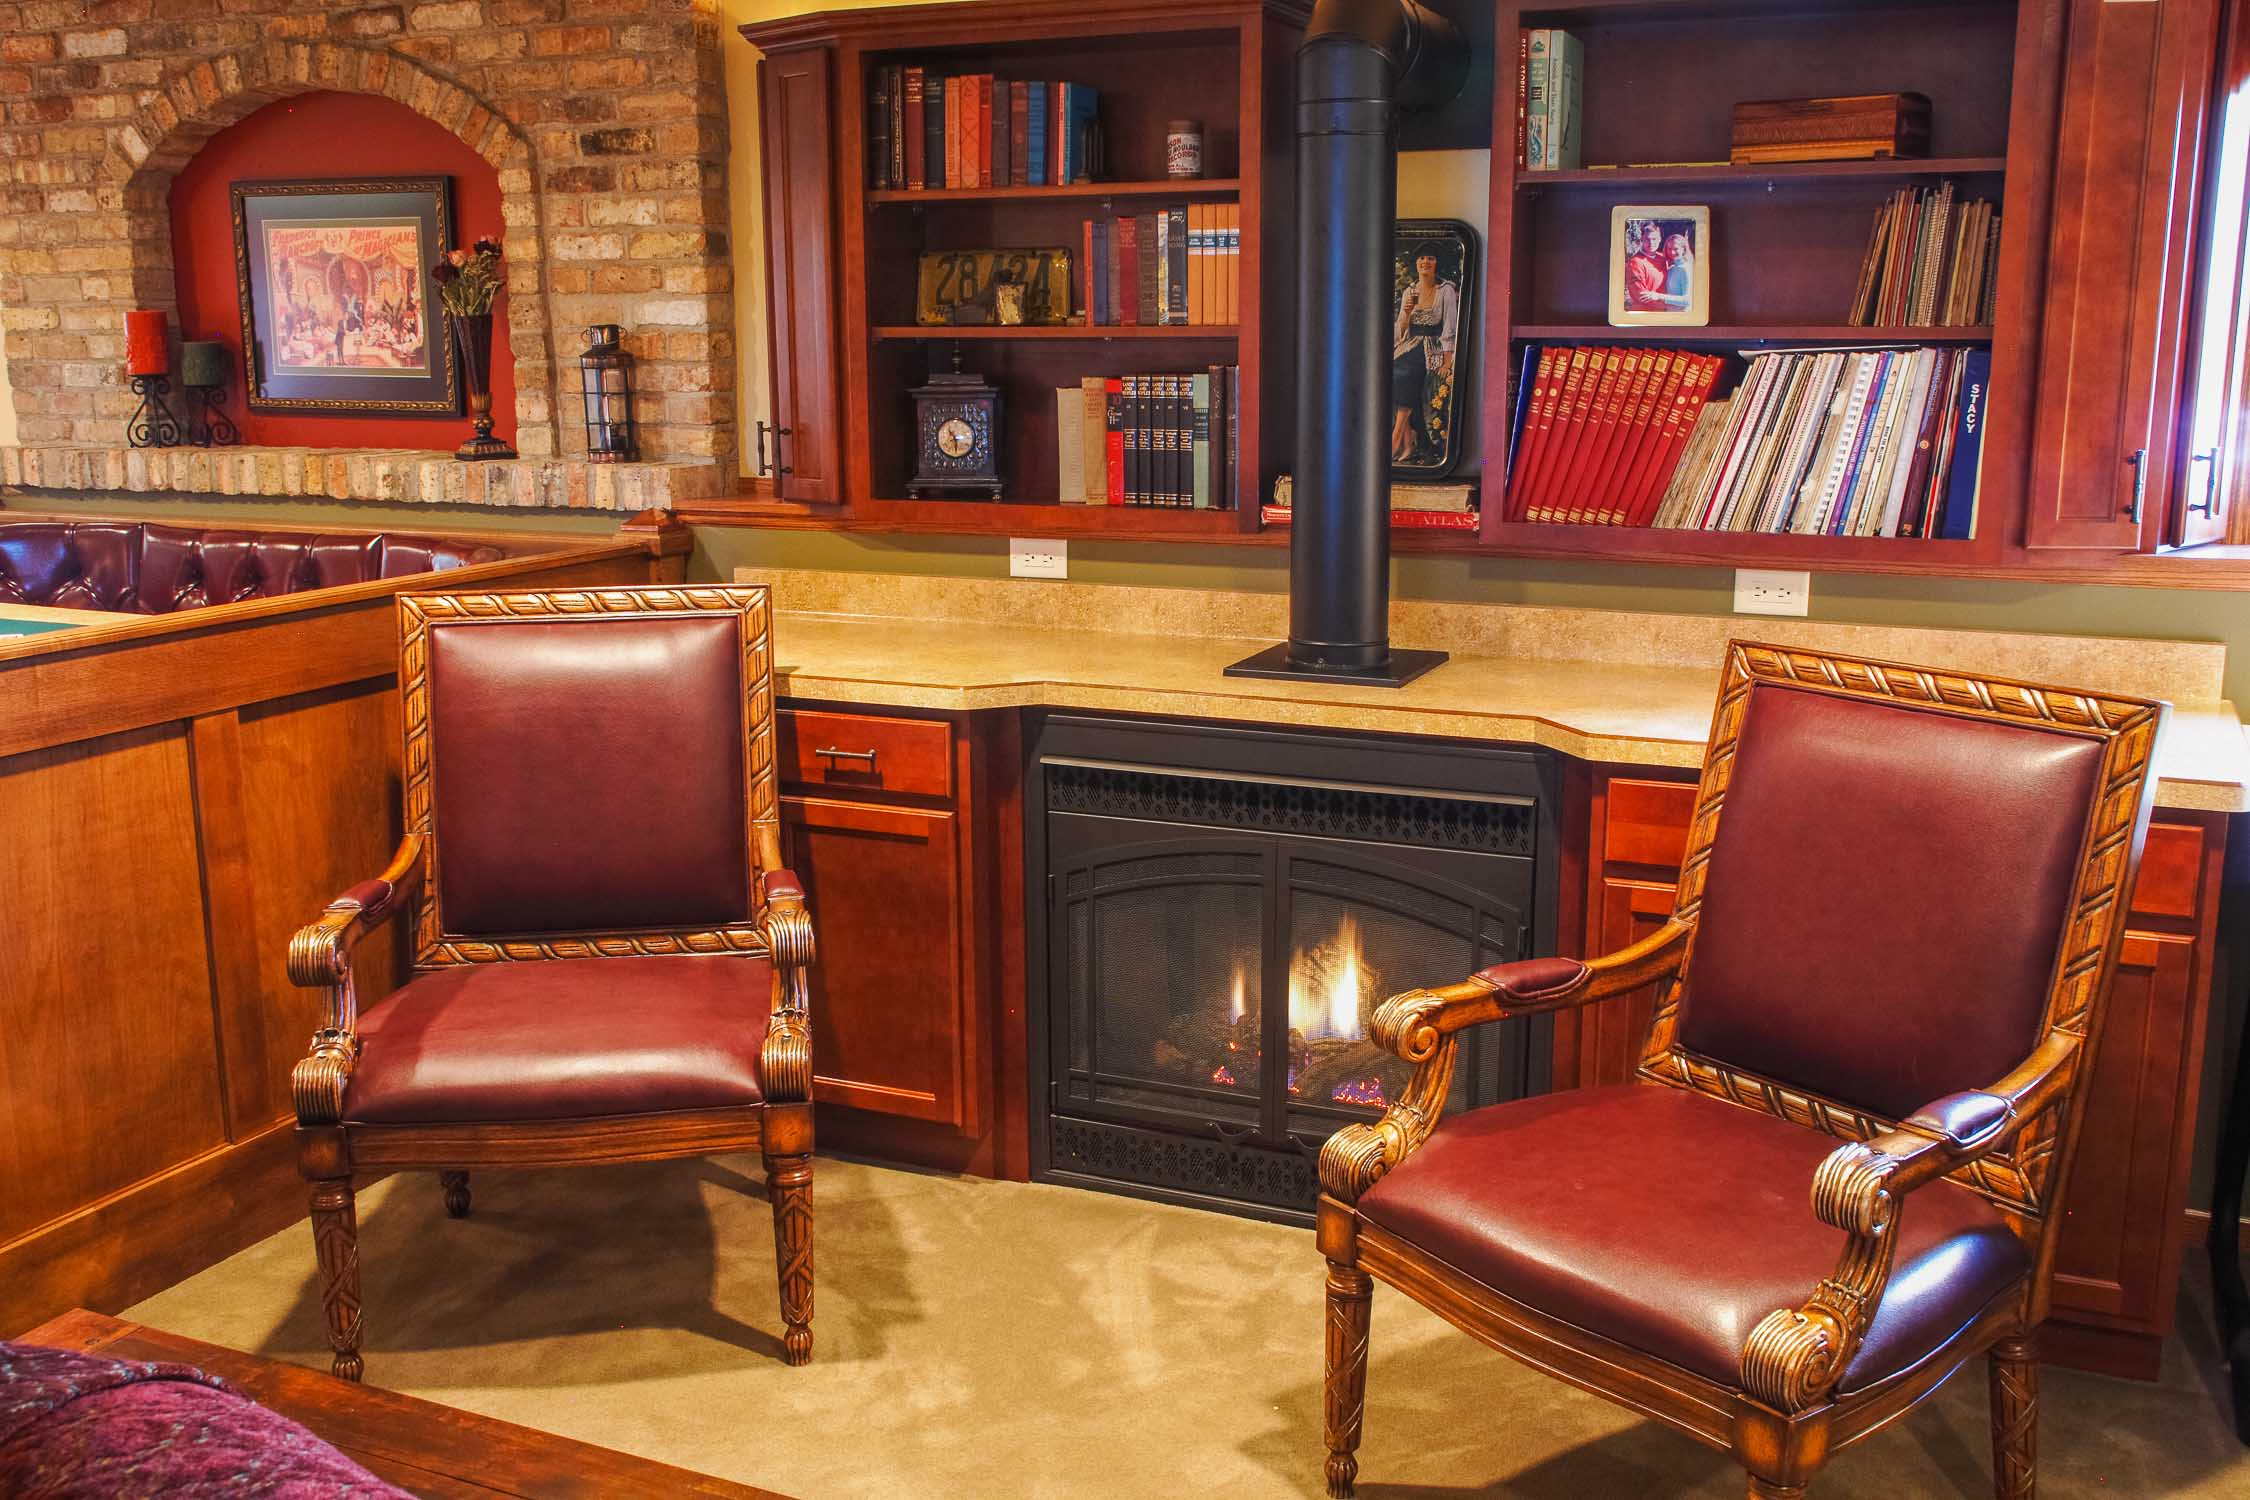 Choosing a home remodeling firm in Madison, WI